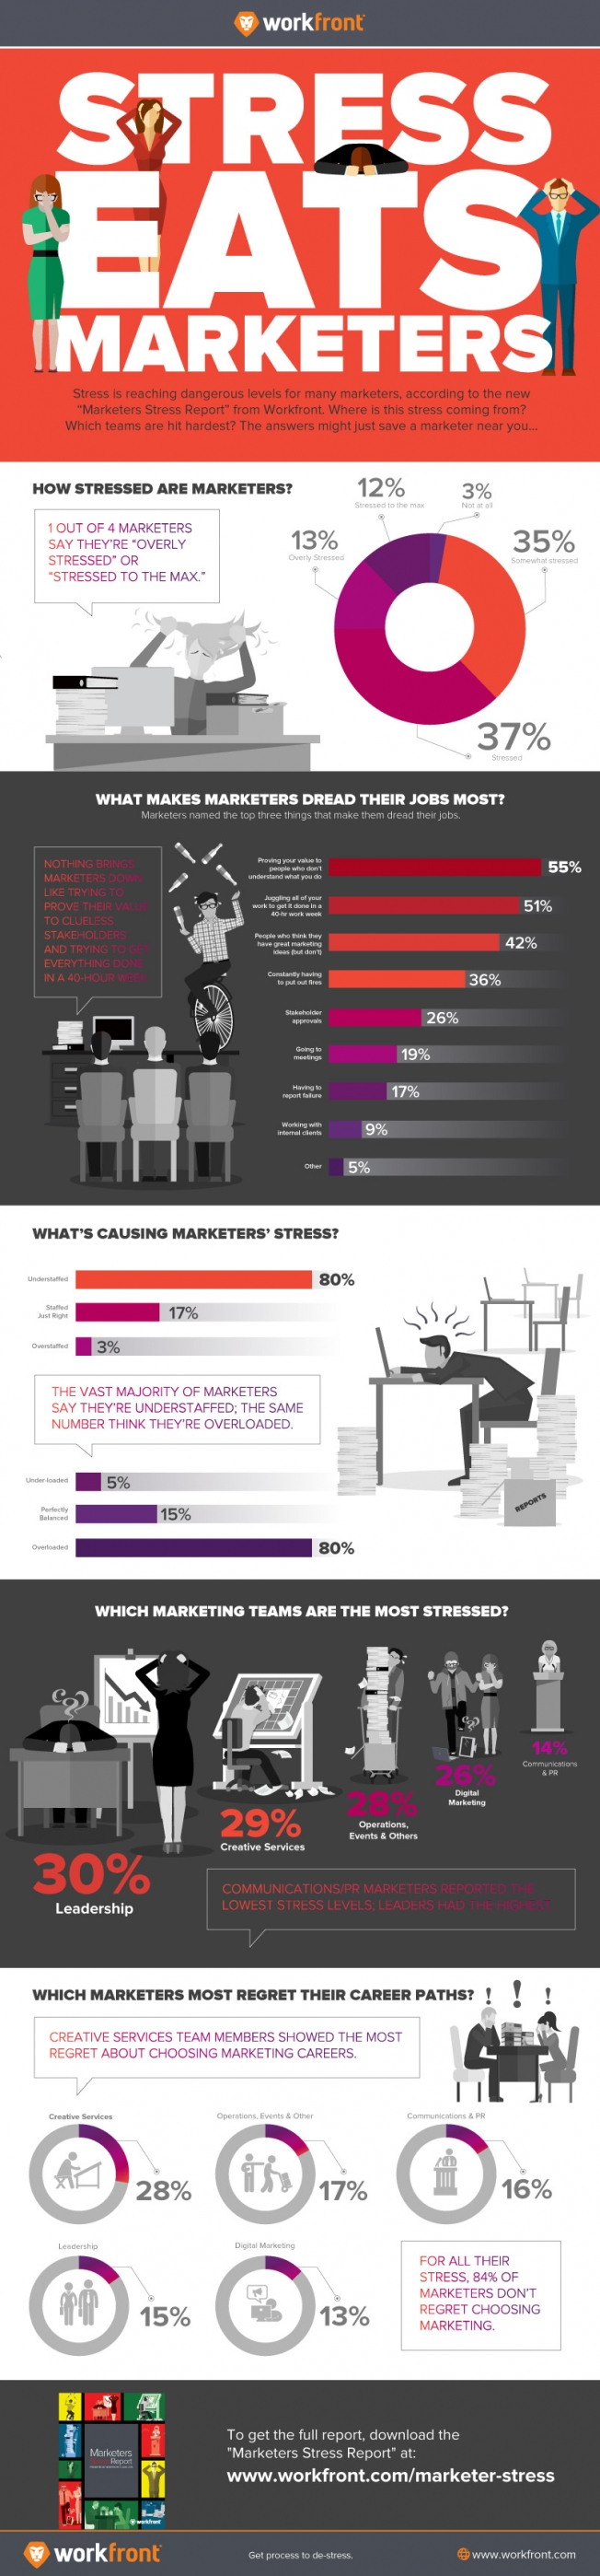 Survey Results: What Do Marketers Stress Most About